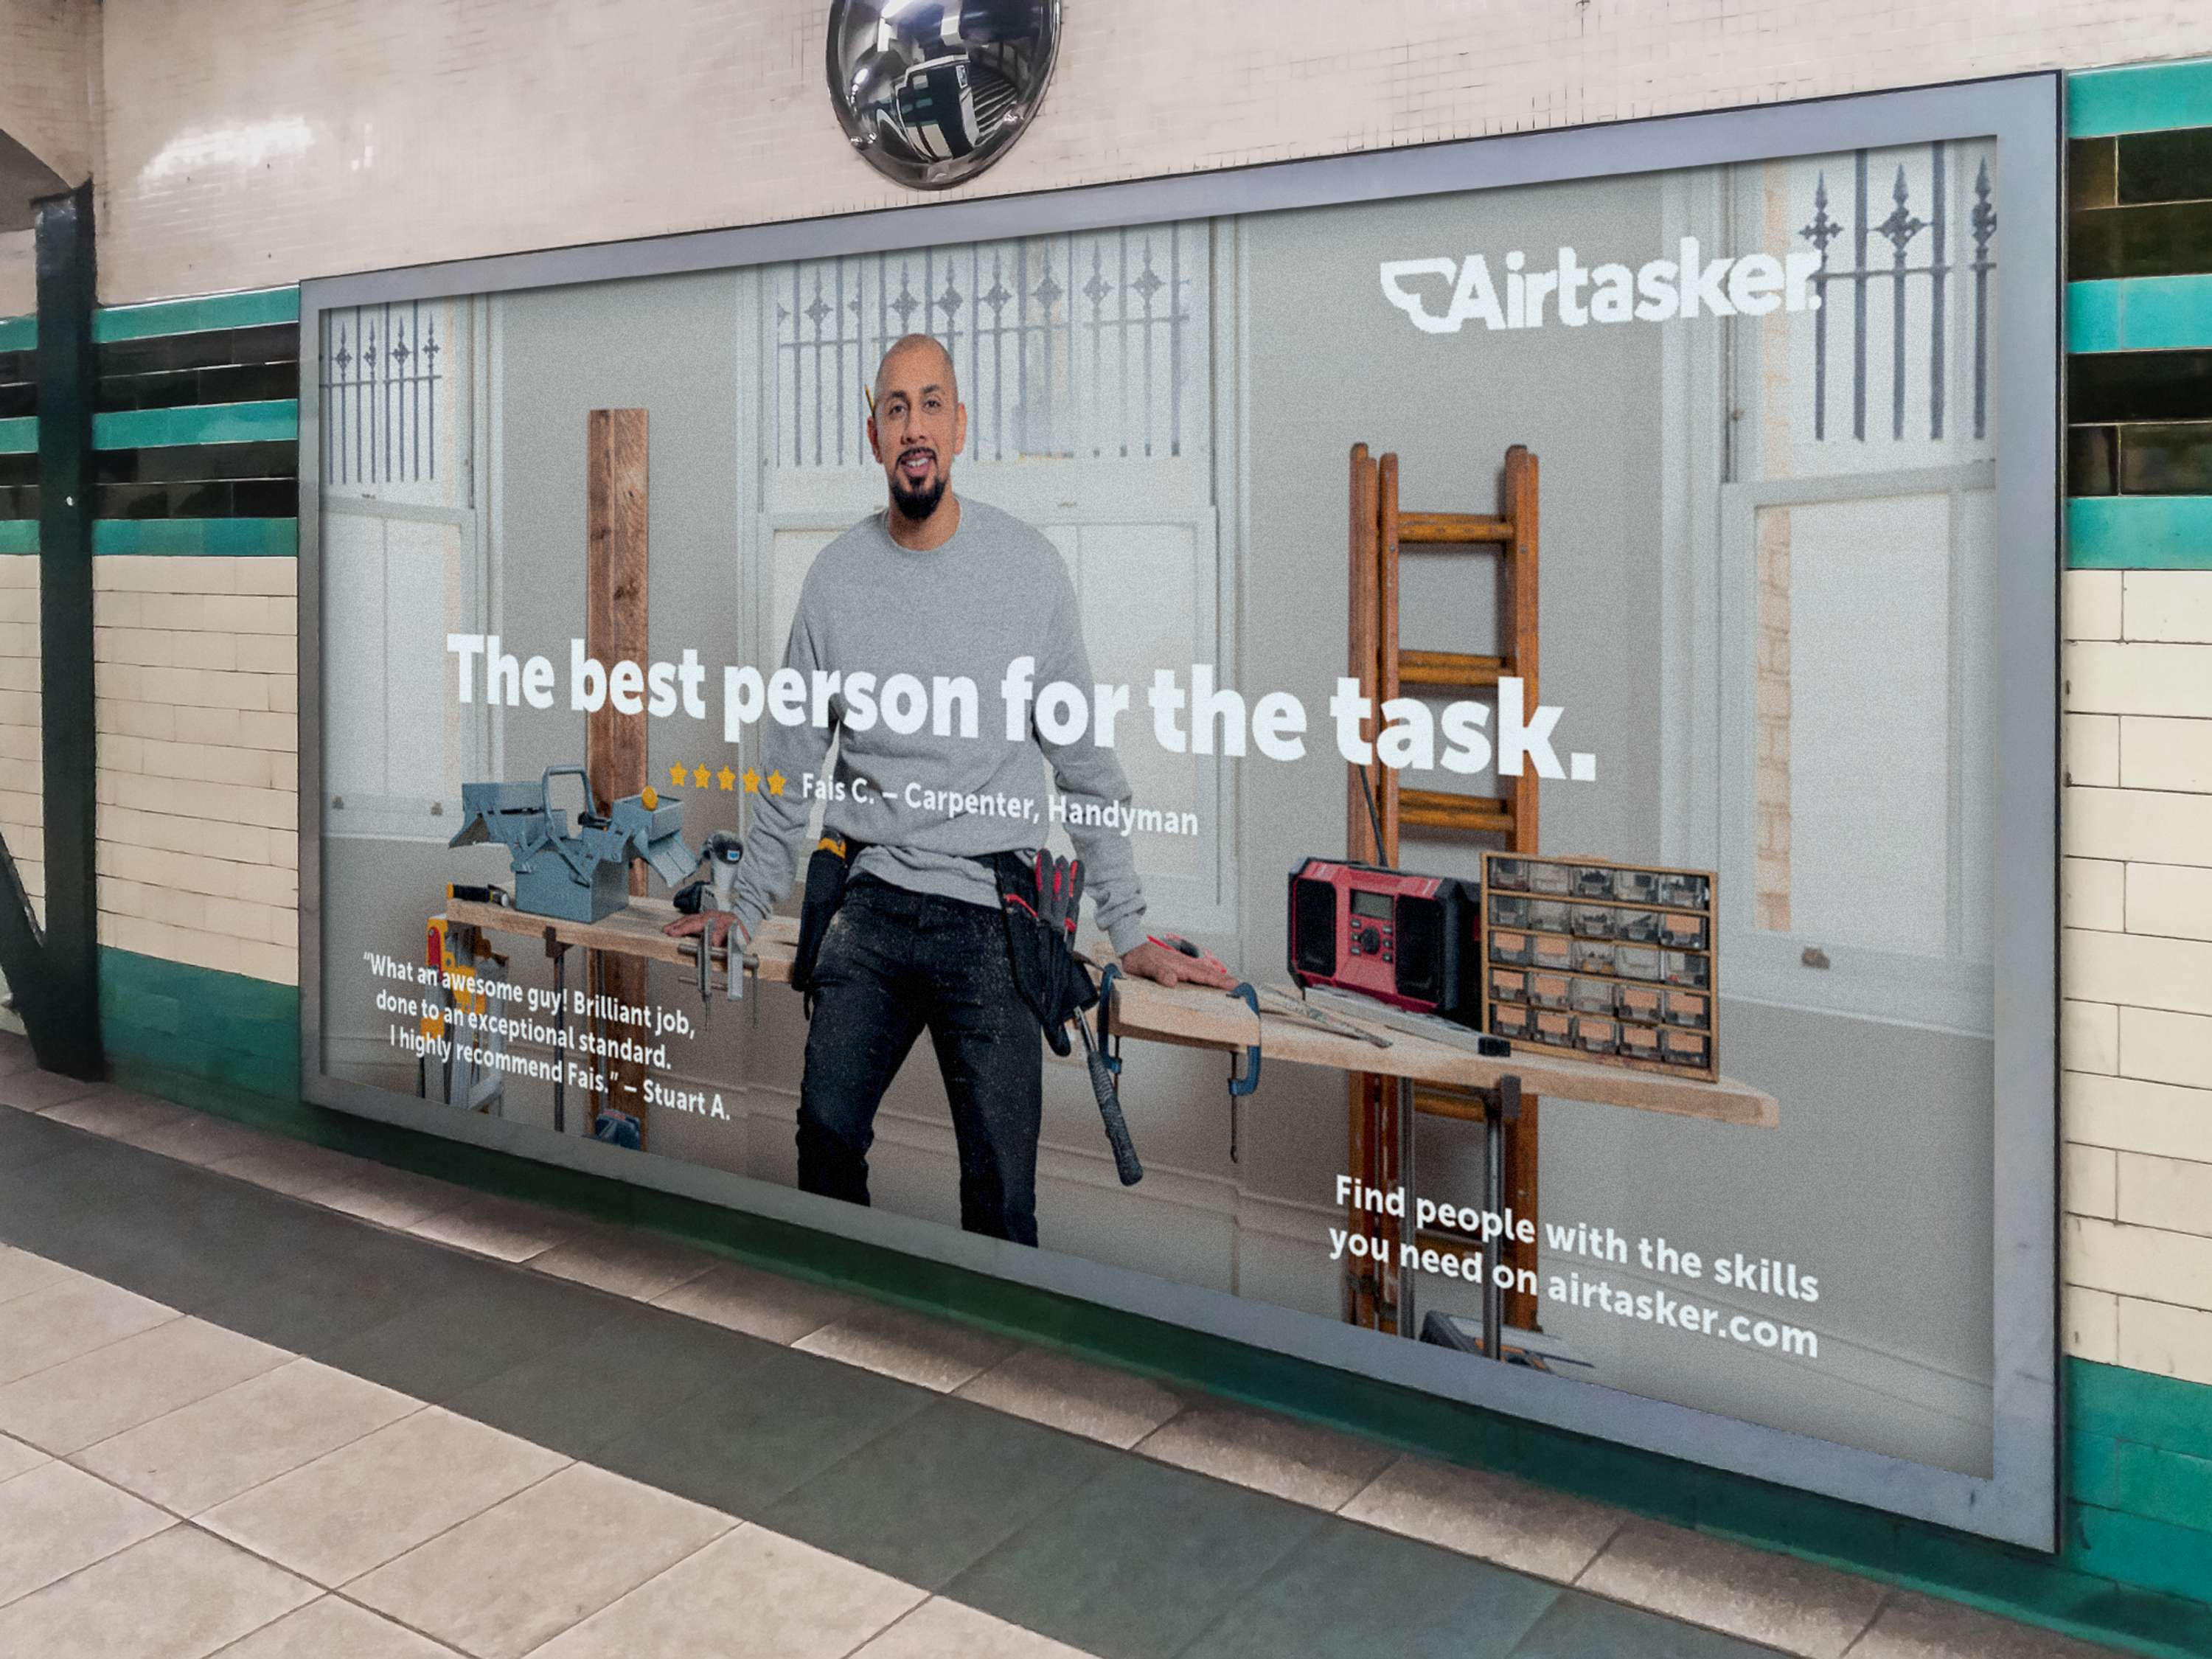 Airtasker: Outdoor Campaign | The Dots